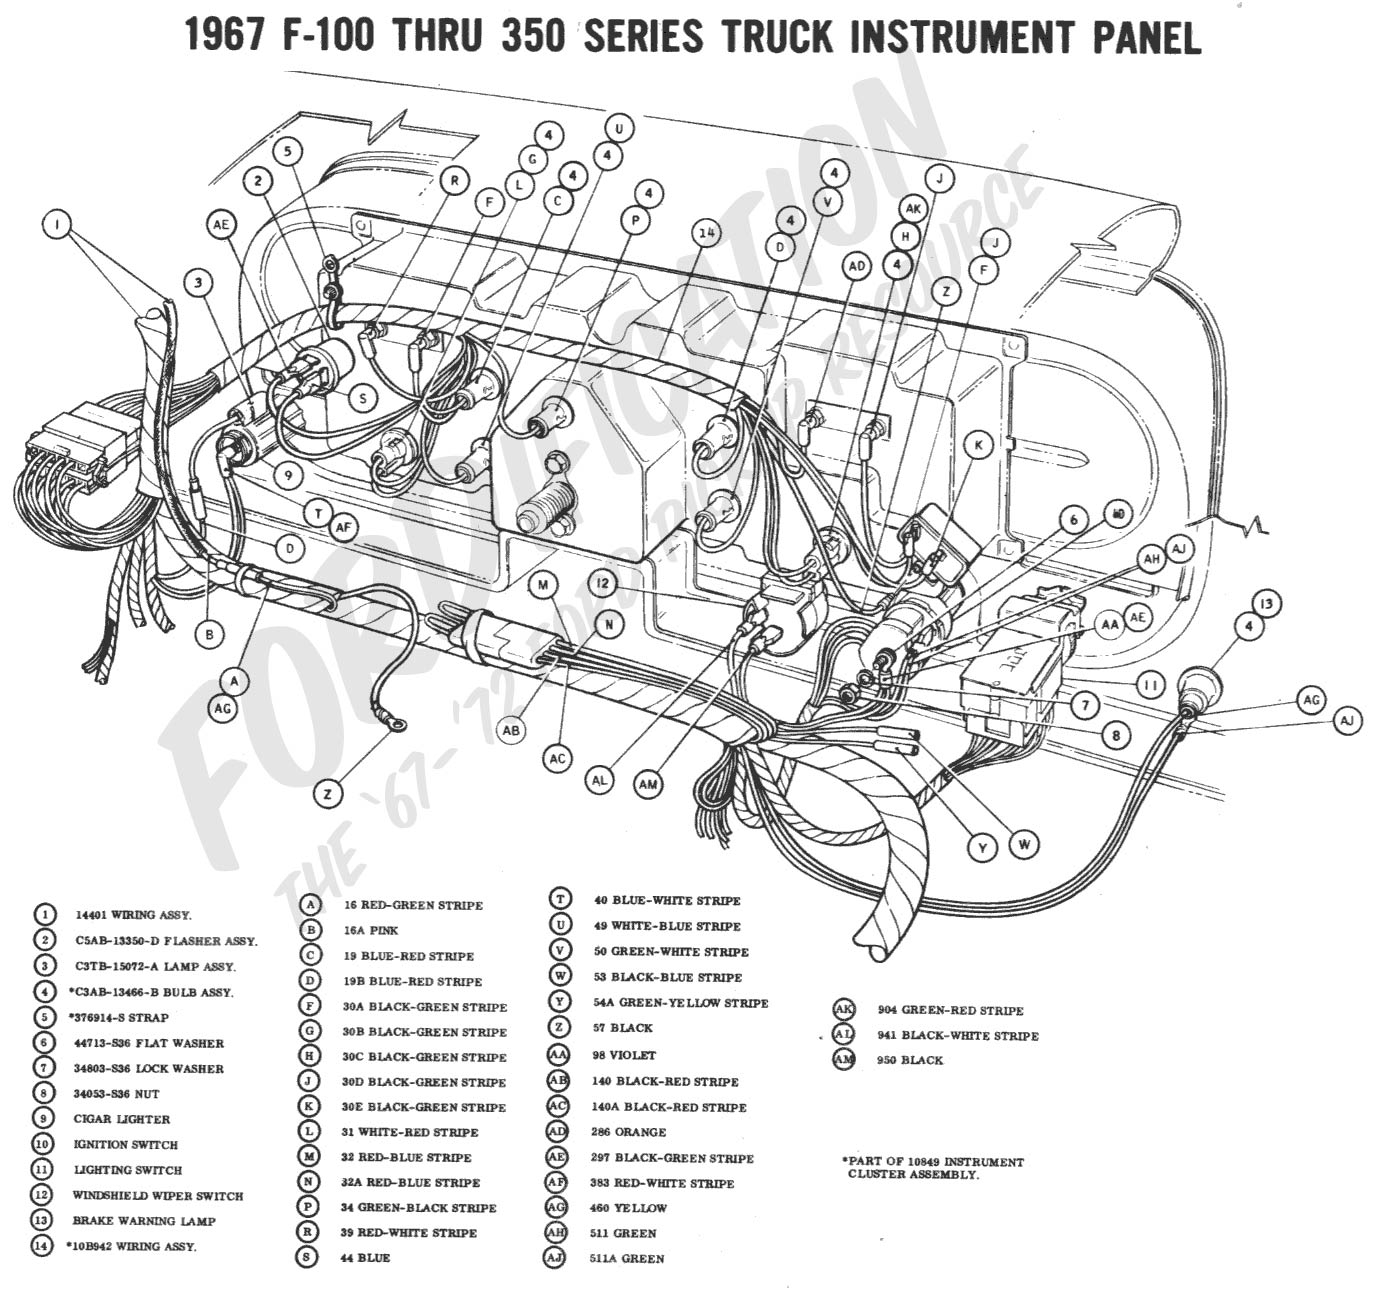 wiring 1967instrumentpanel ford truck technical drawings and schematics section h wiring  at eliteediting.co